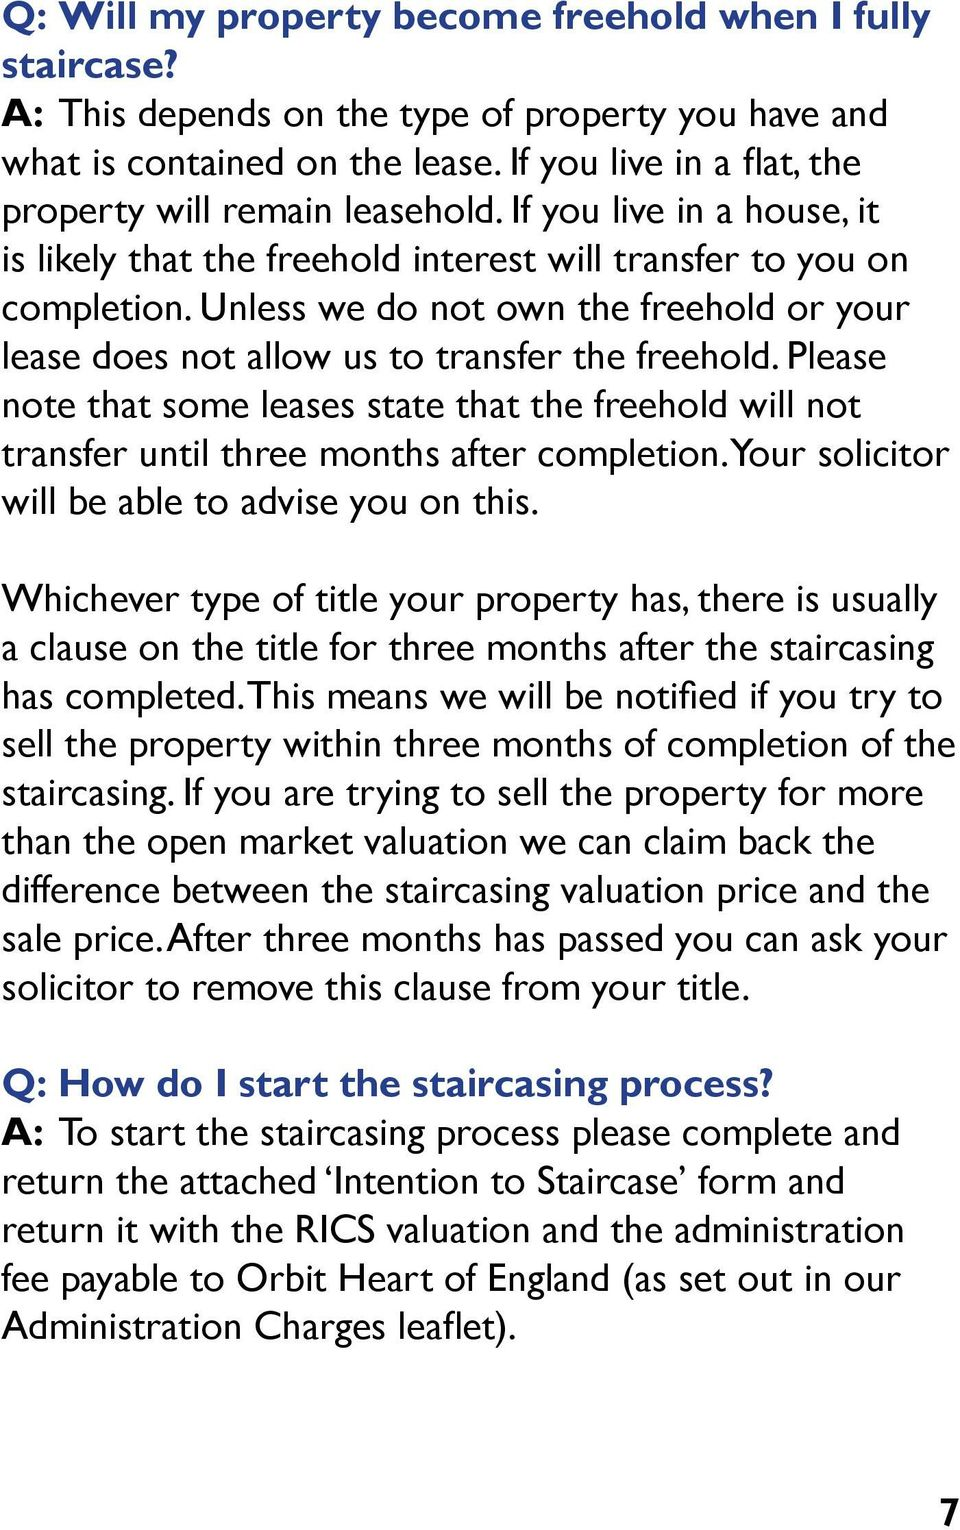 Unless we do not own the freehold or your lease does not allow us to transfer the freehold. Please note that some leases state that the freehold will not transfer until three months after completion.